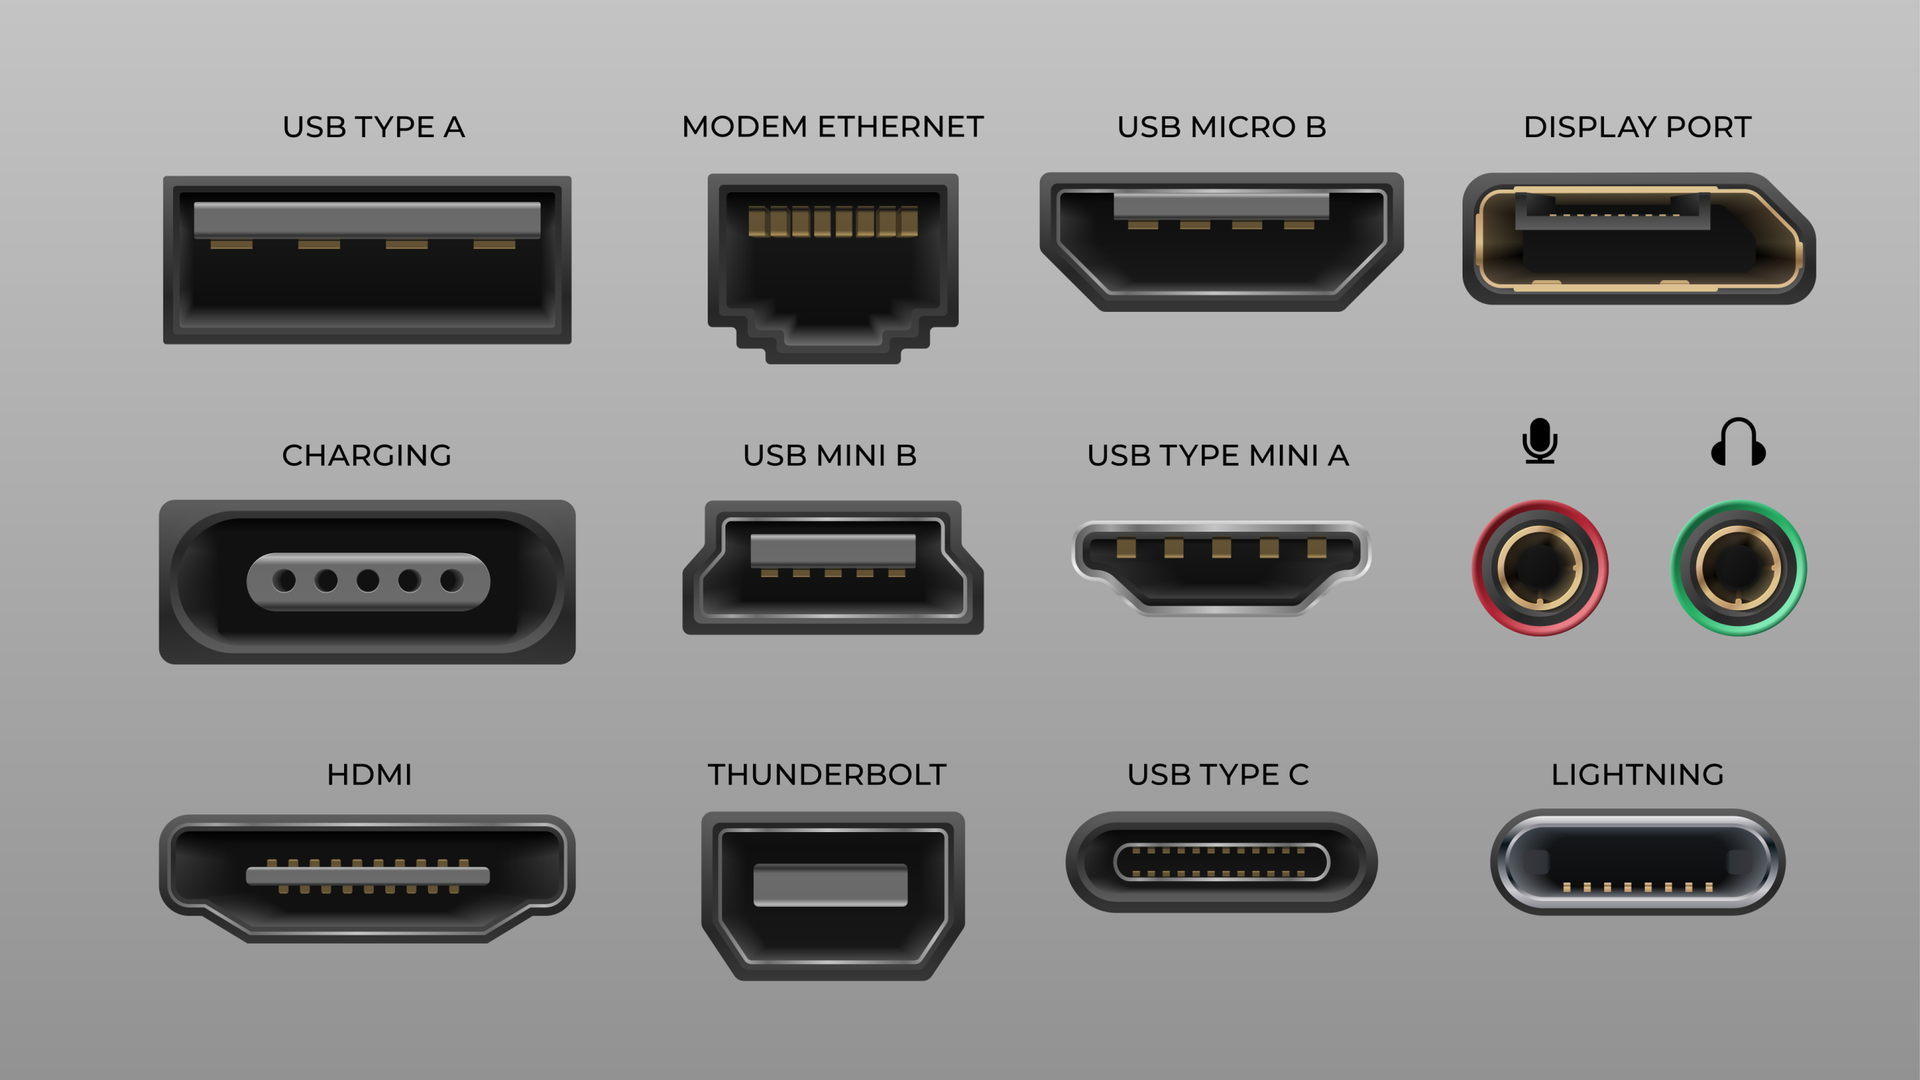 Connector and ports. USB type A and type C, video ports hand drawnMI DVI and Displayport, audio coaxial, lightning vector ports, universal elements pc connectors